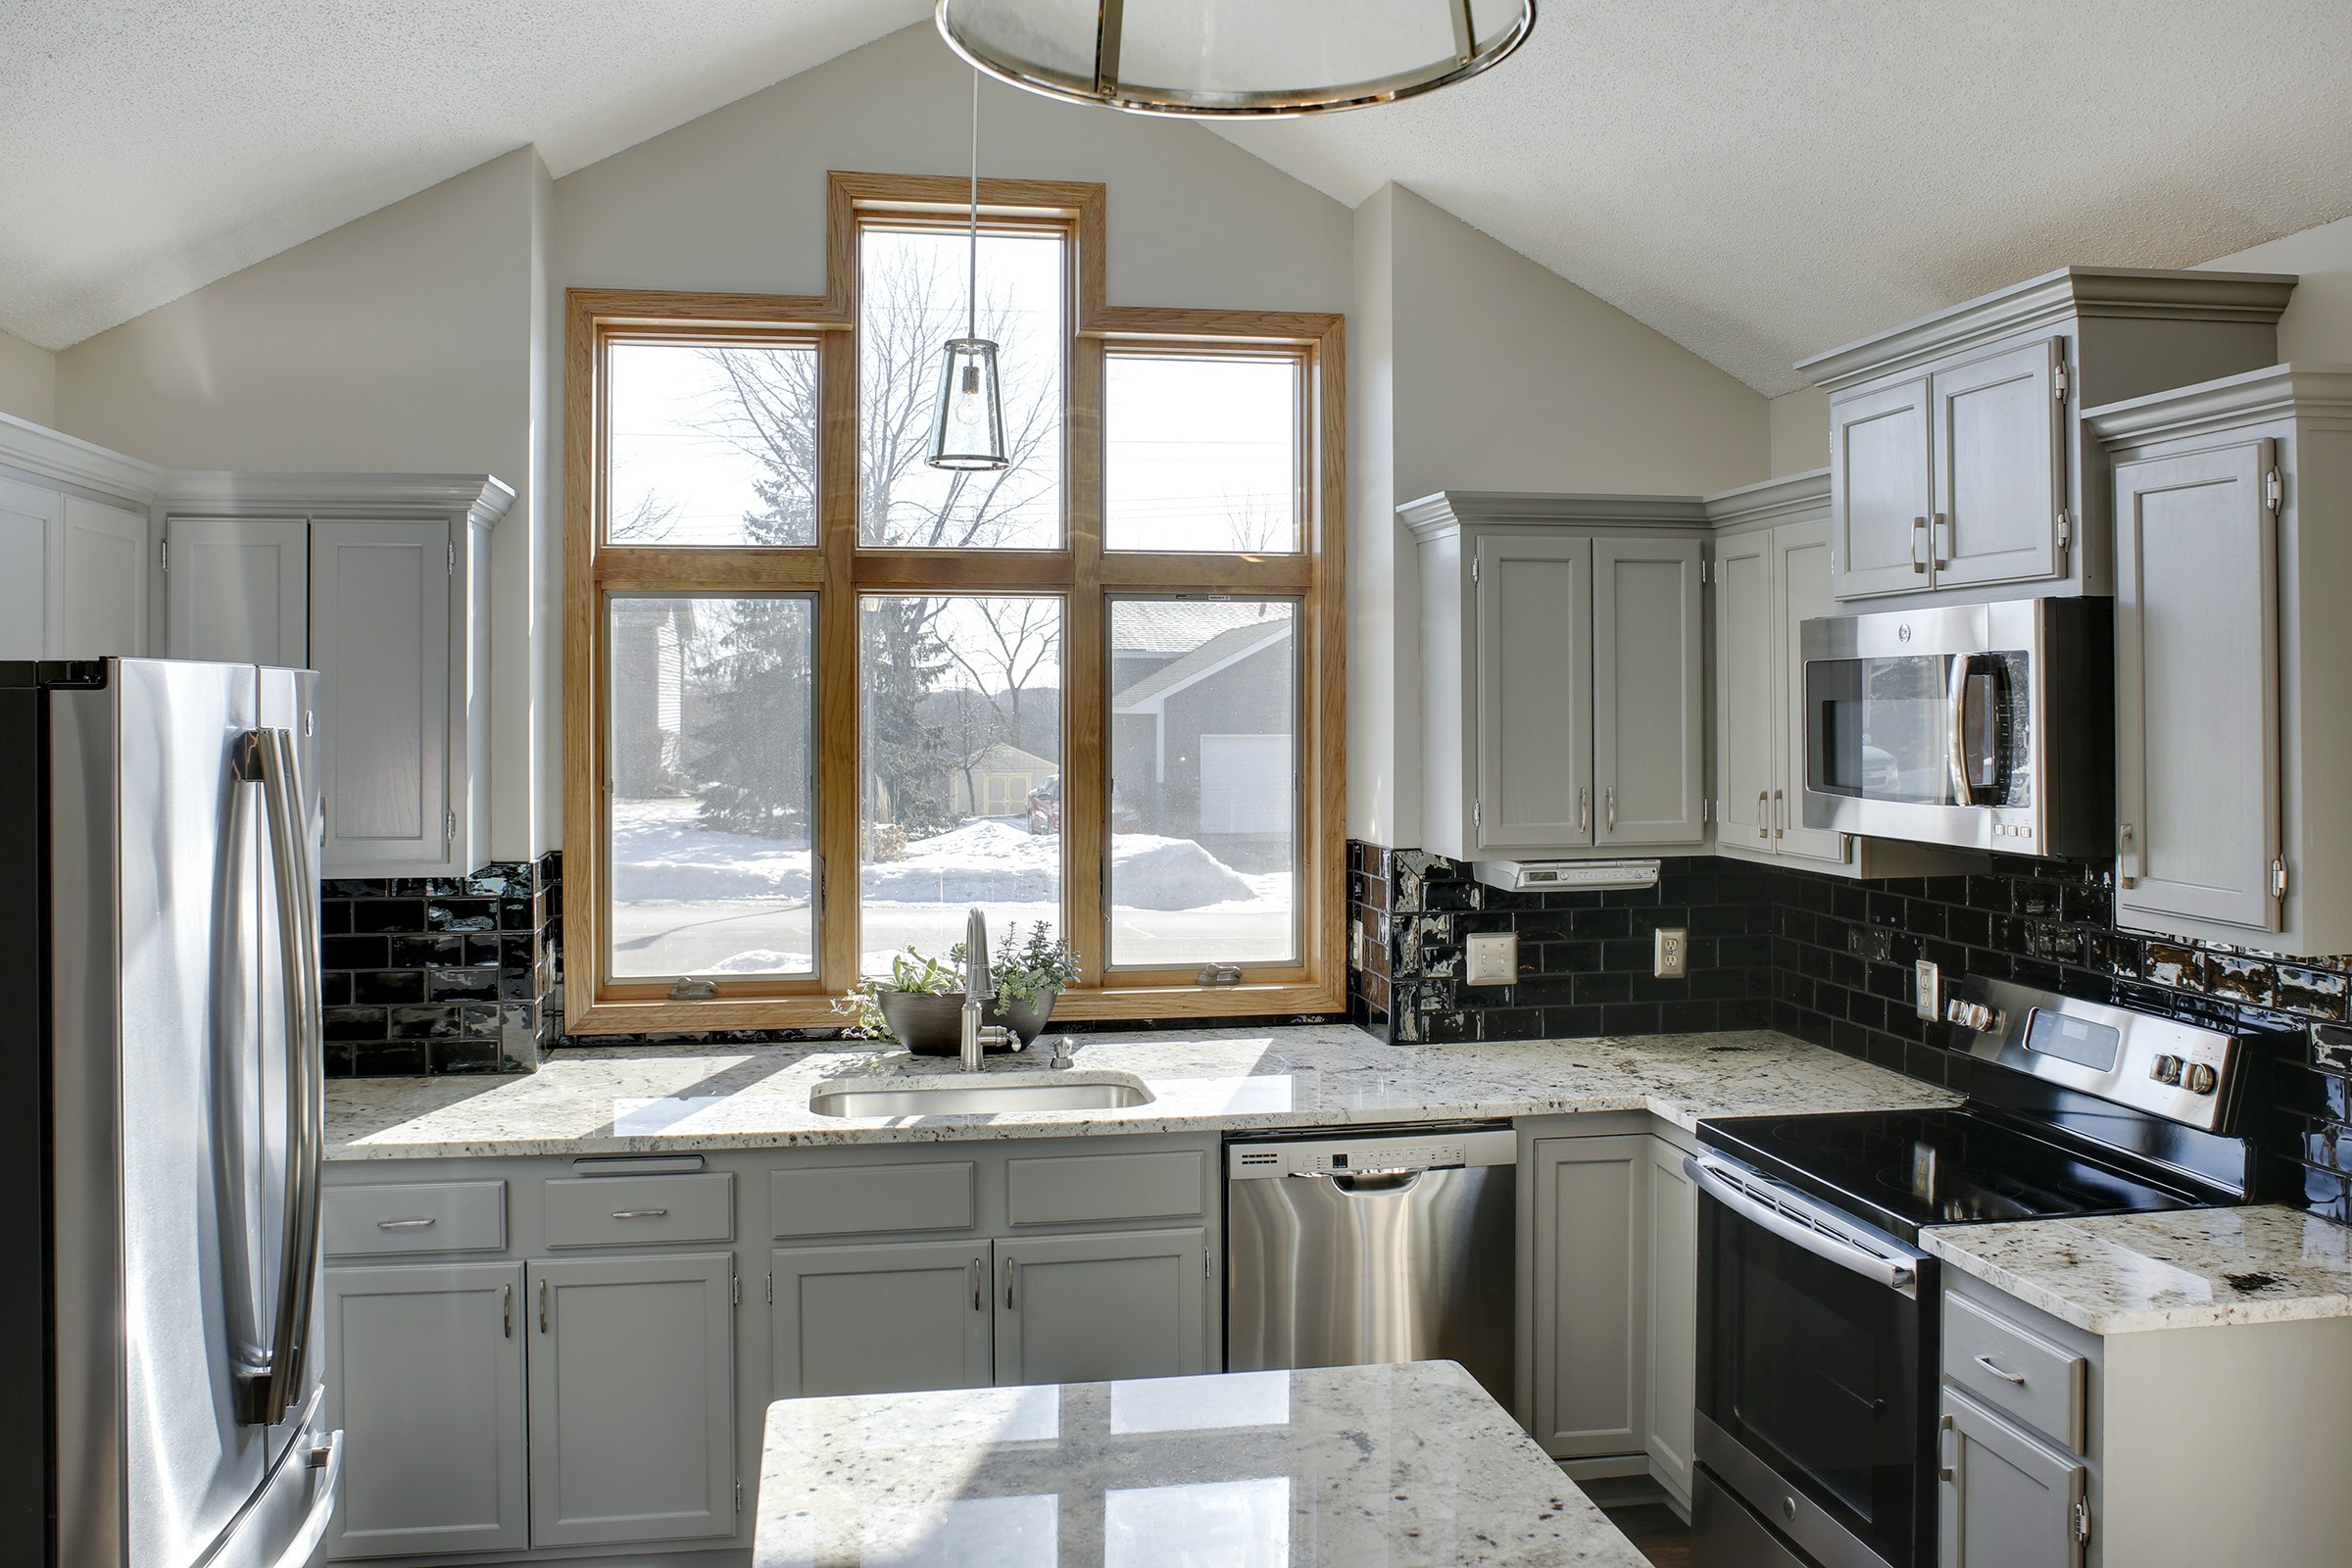 Stock Vs Semi Custom Vs Custom Kitchen Cabinets Home Building And Remodeling Experts In